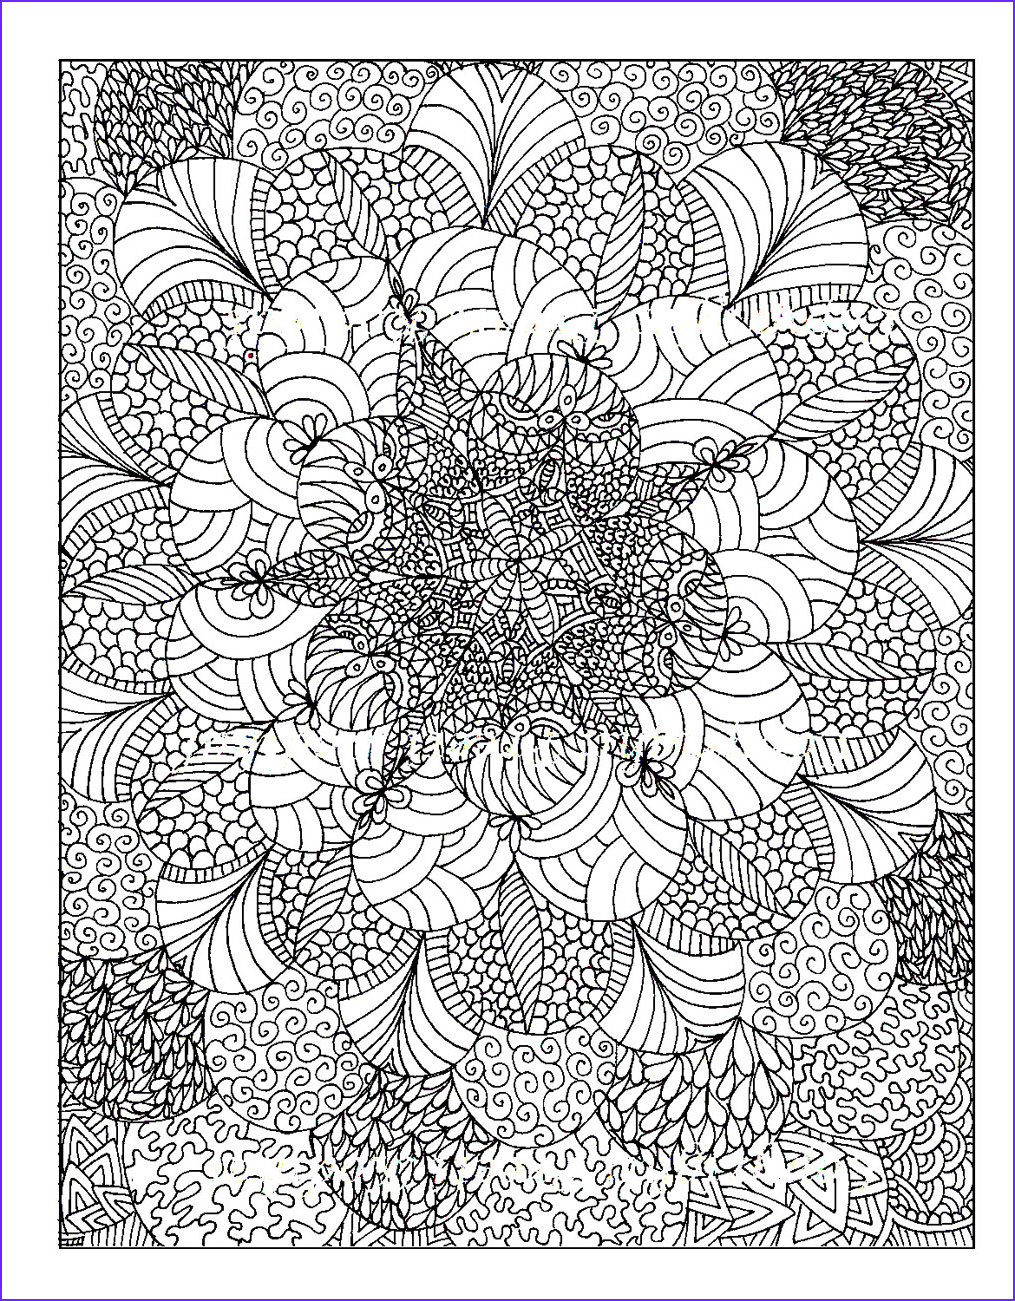 wellbeing wednesday colouring in for adults relaxation